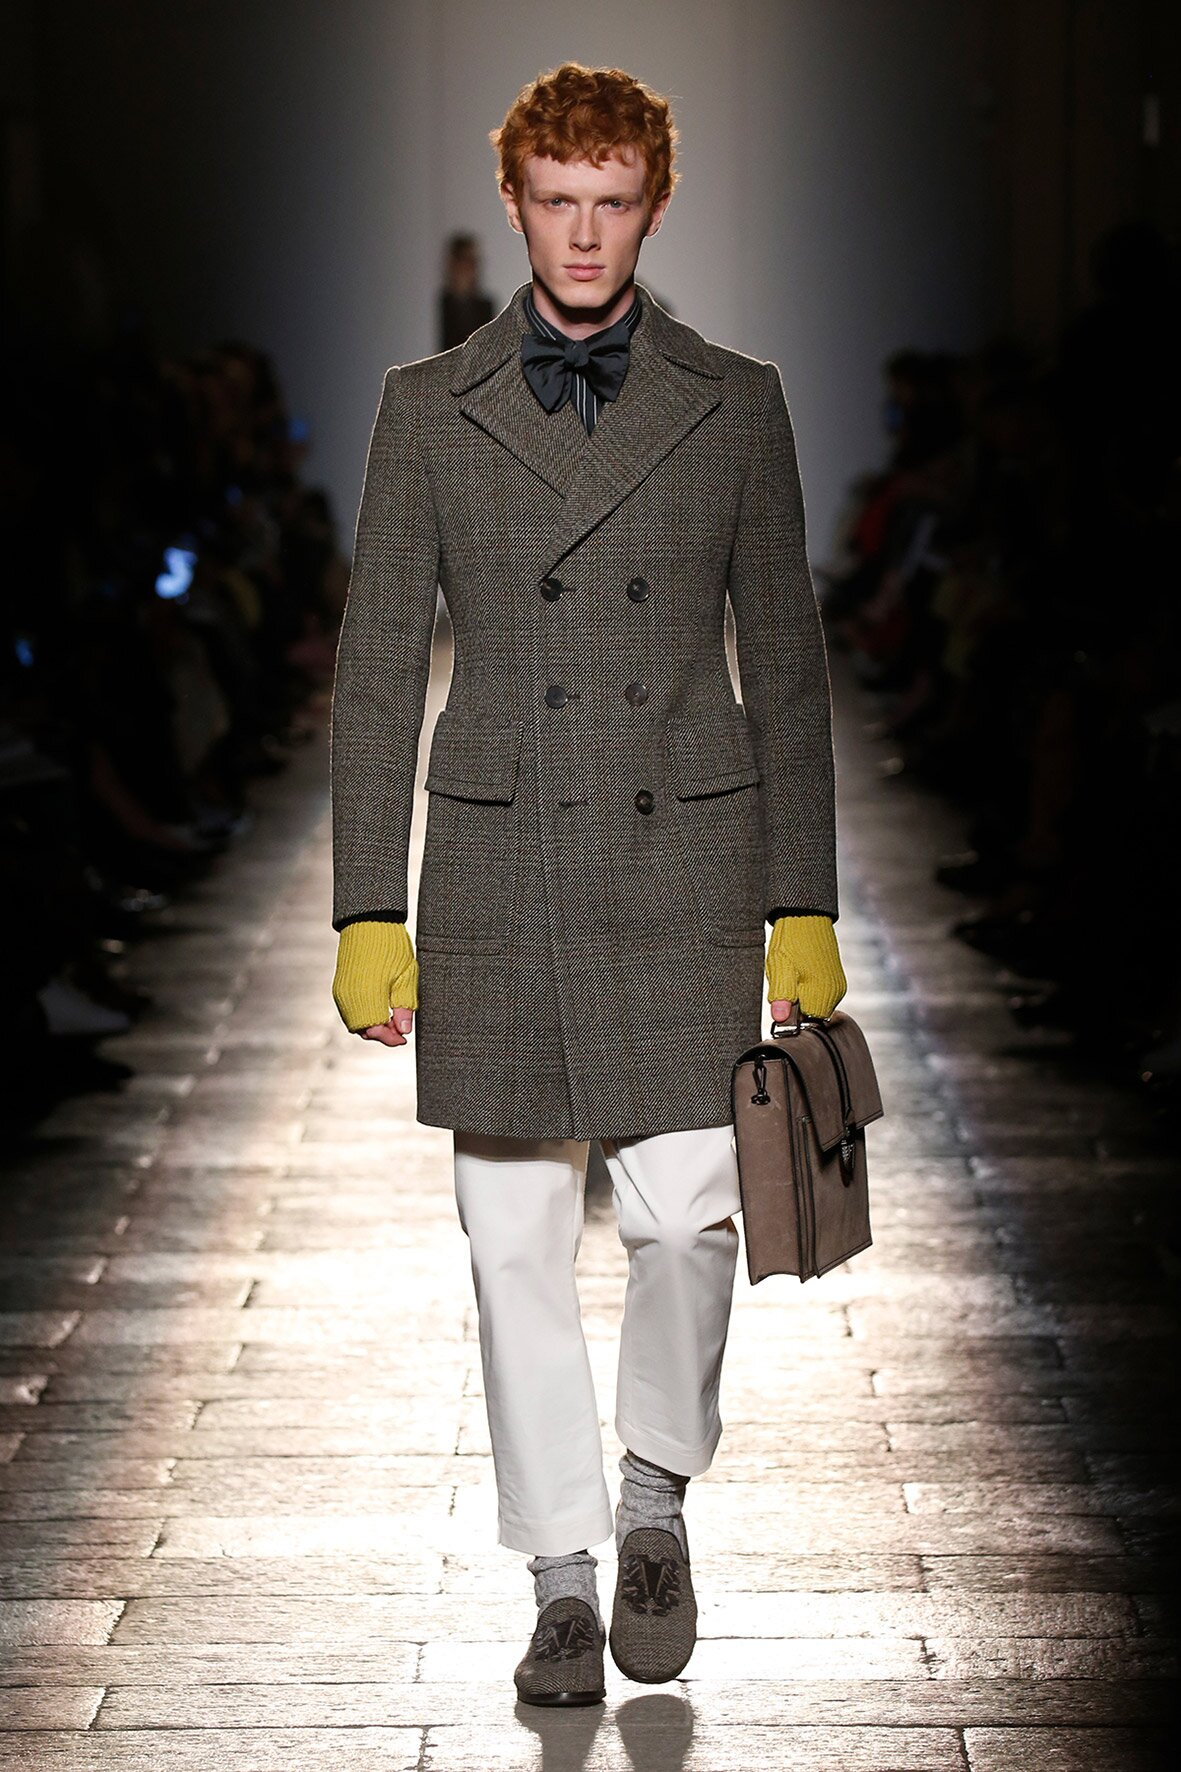 Fashion Man Model Bottega Veneta Catwalk 17-18